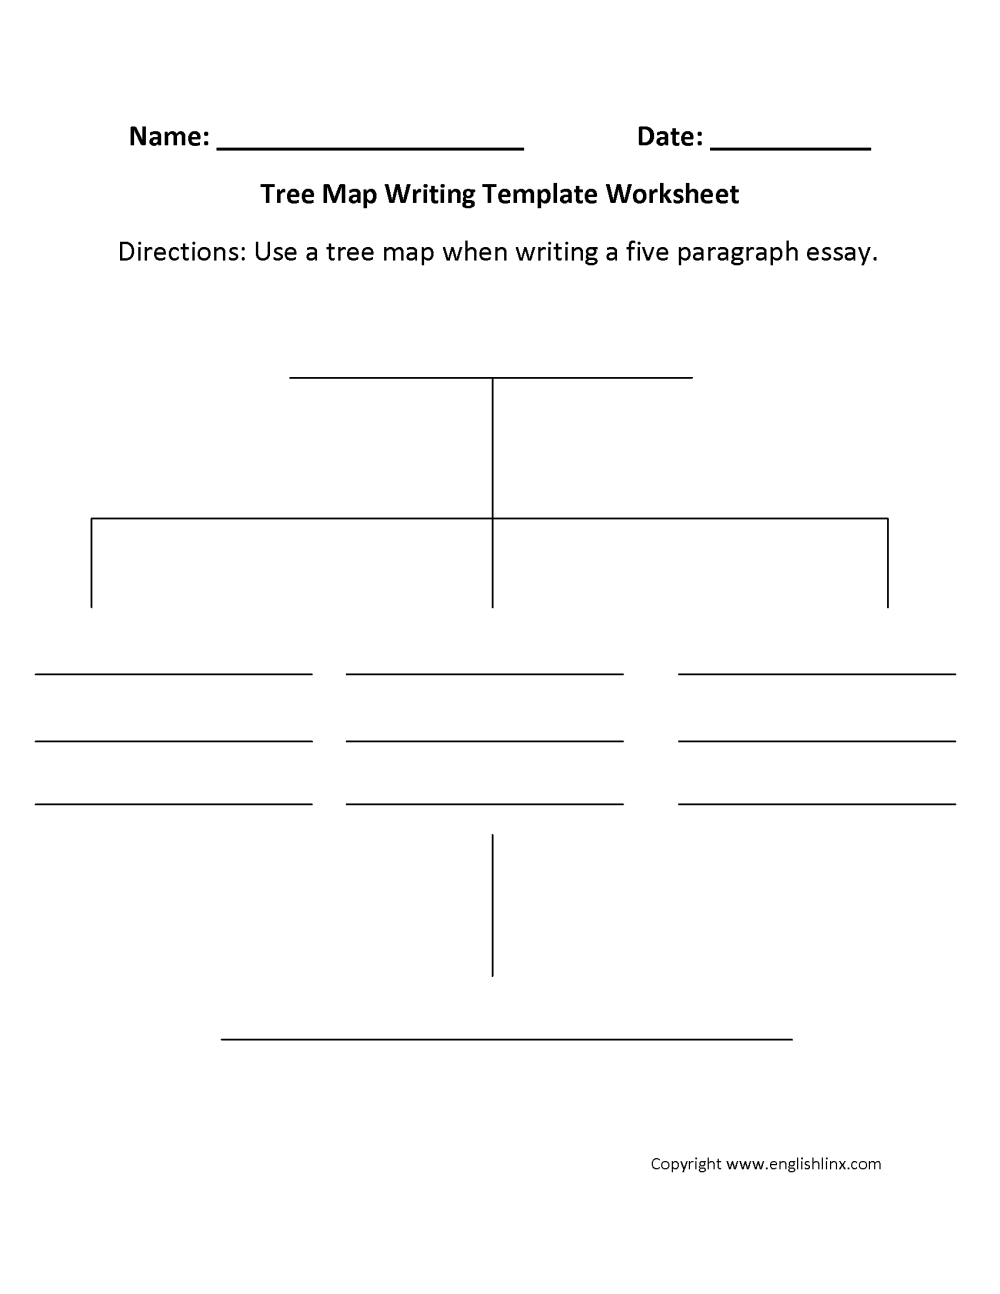 medium resolution of Essay Editing Worksheets - Proofreading Essay Worksheet